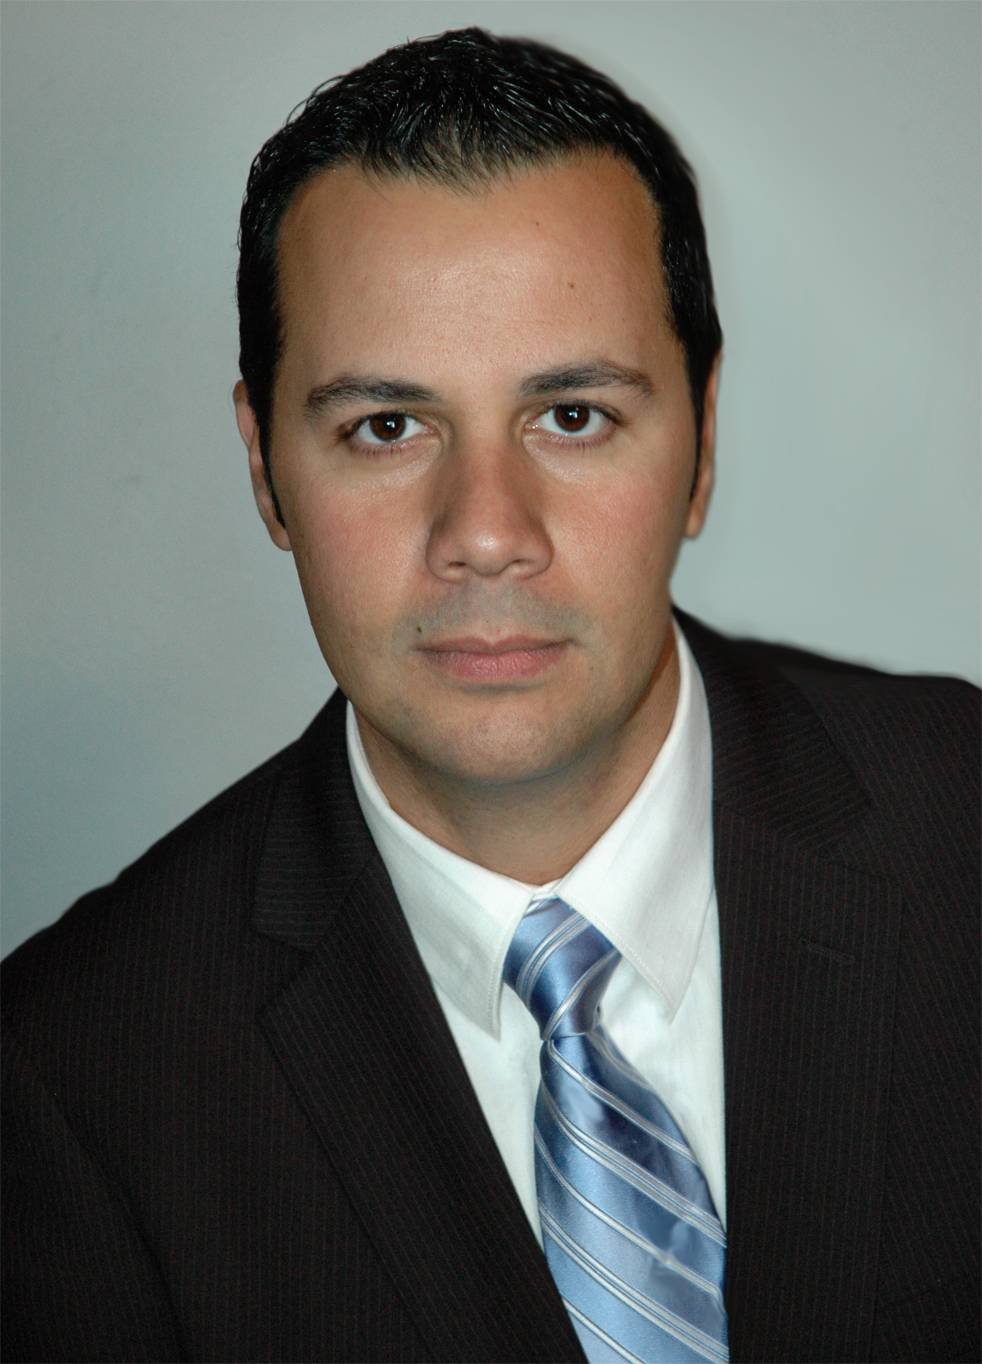 Taso Triantafillos, running for Addison District 4 School Board (4-year Terms)